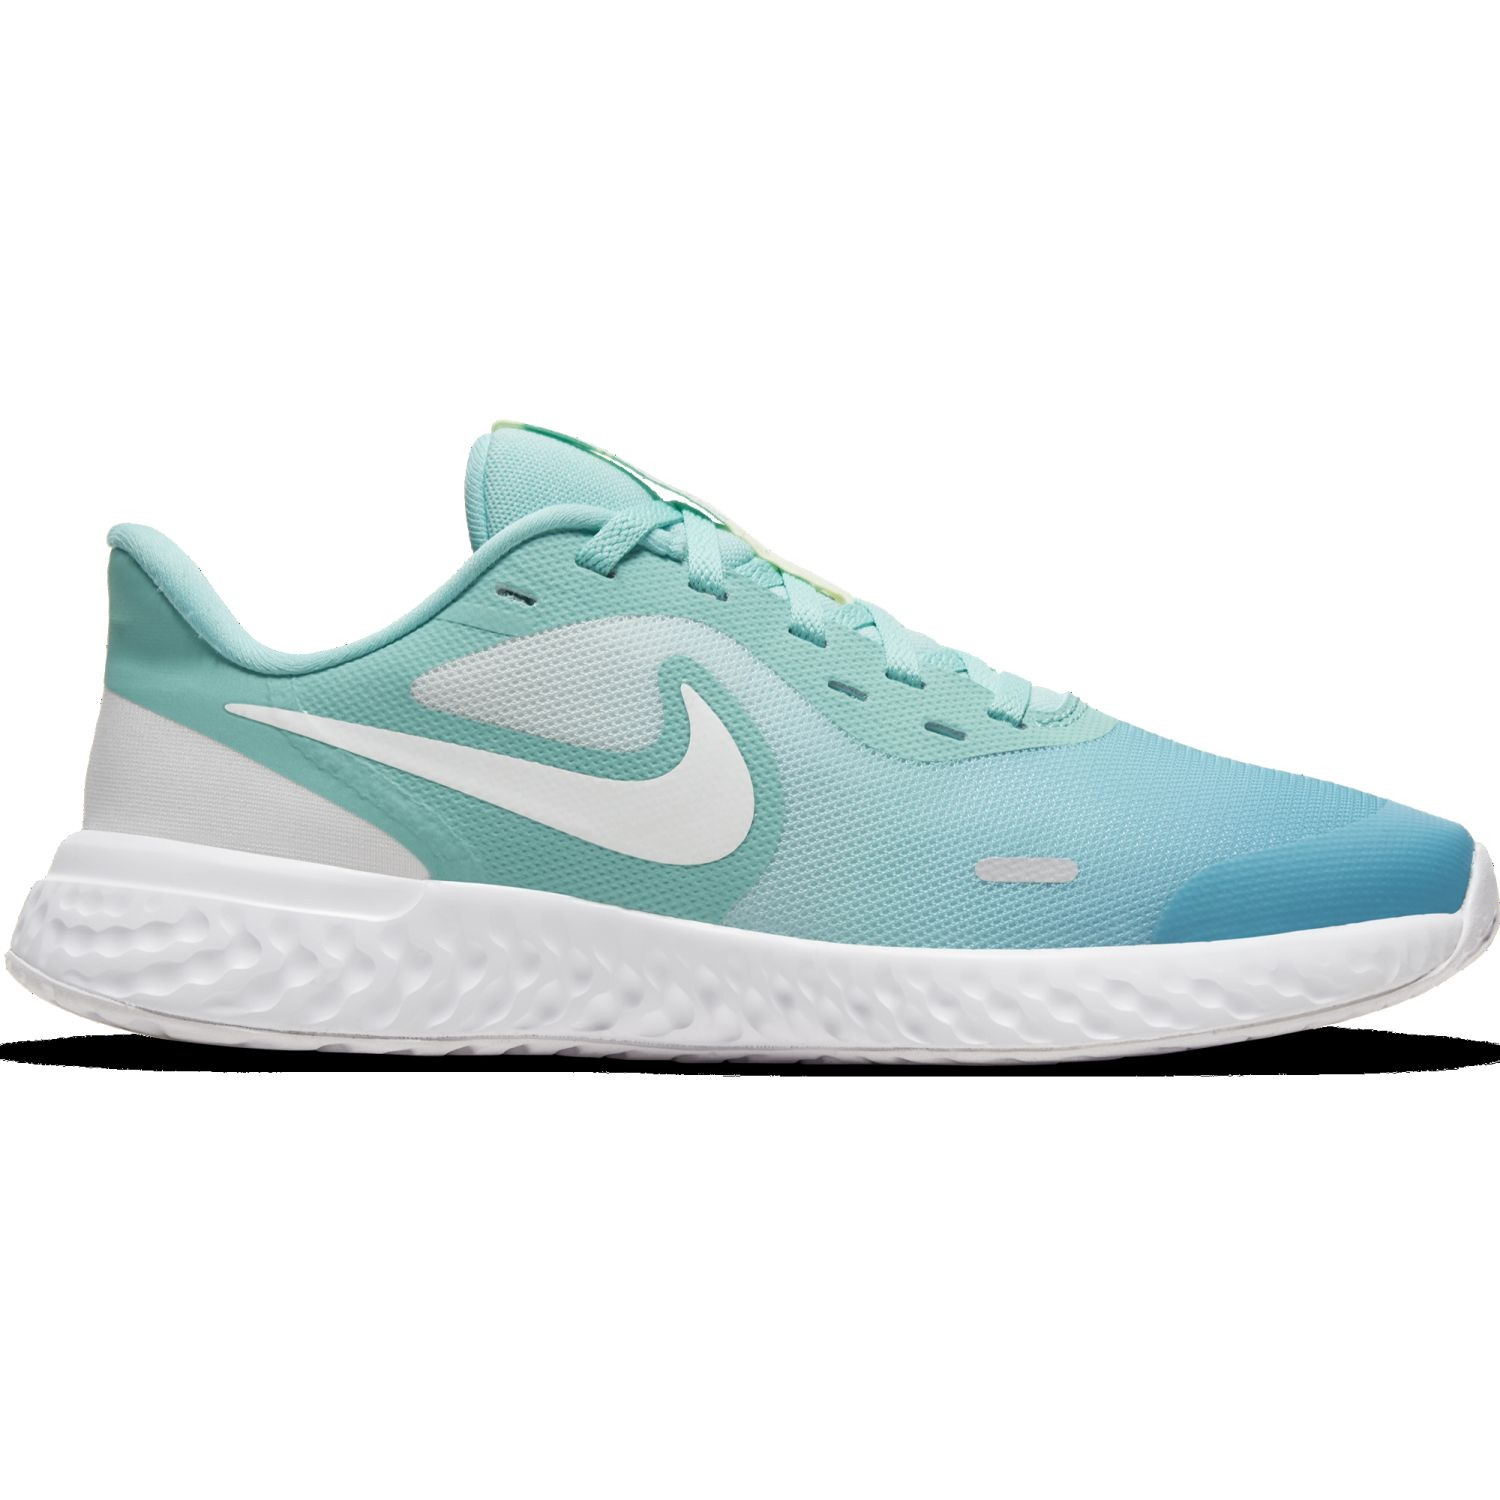 Nike NIKE REVOLUTION 5 D2N GS Celeste / verde Walking